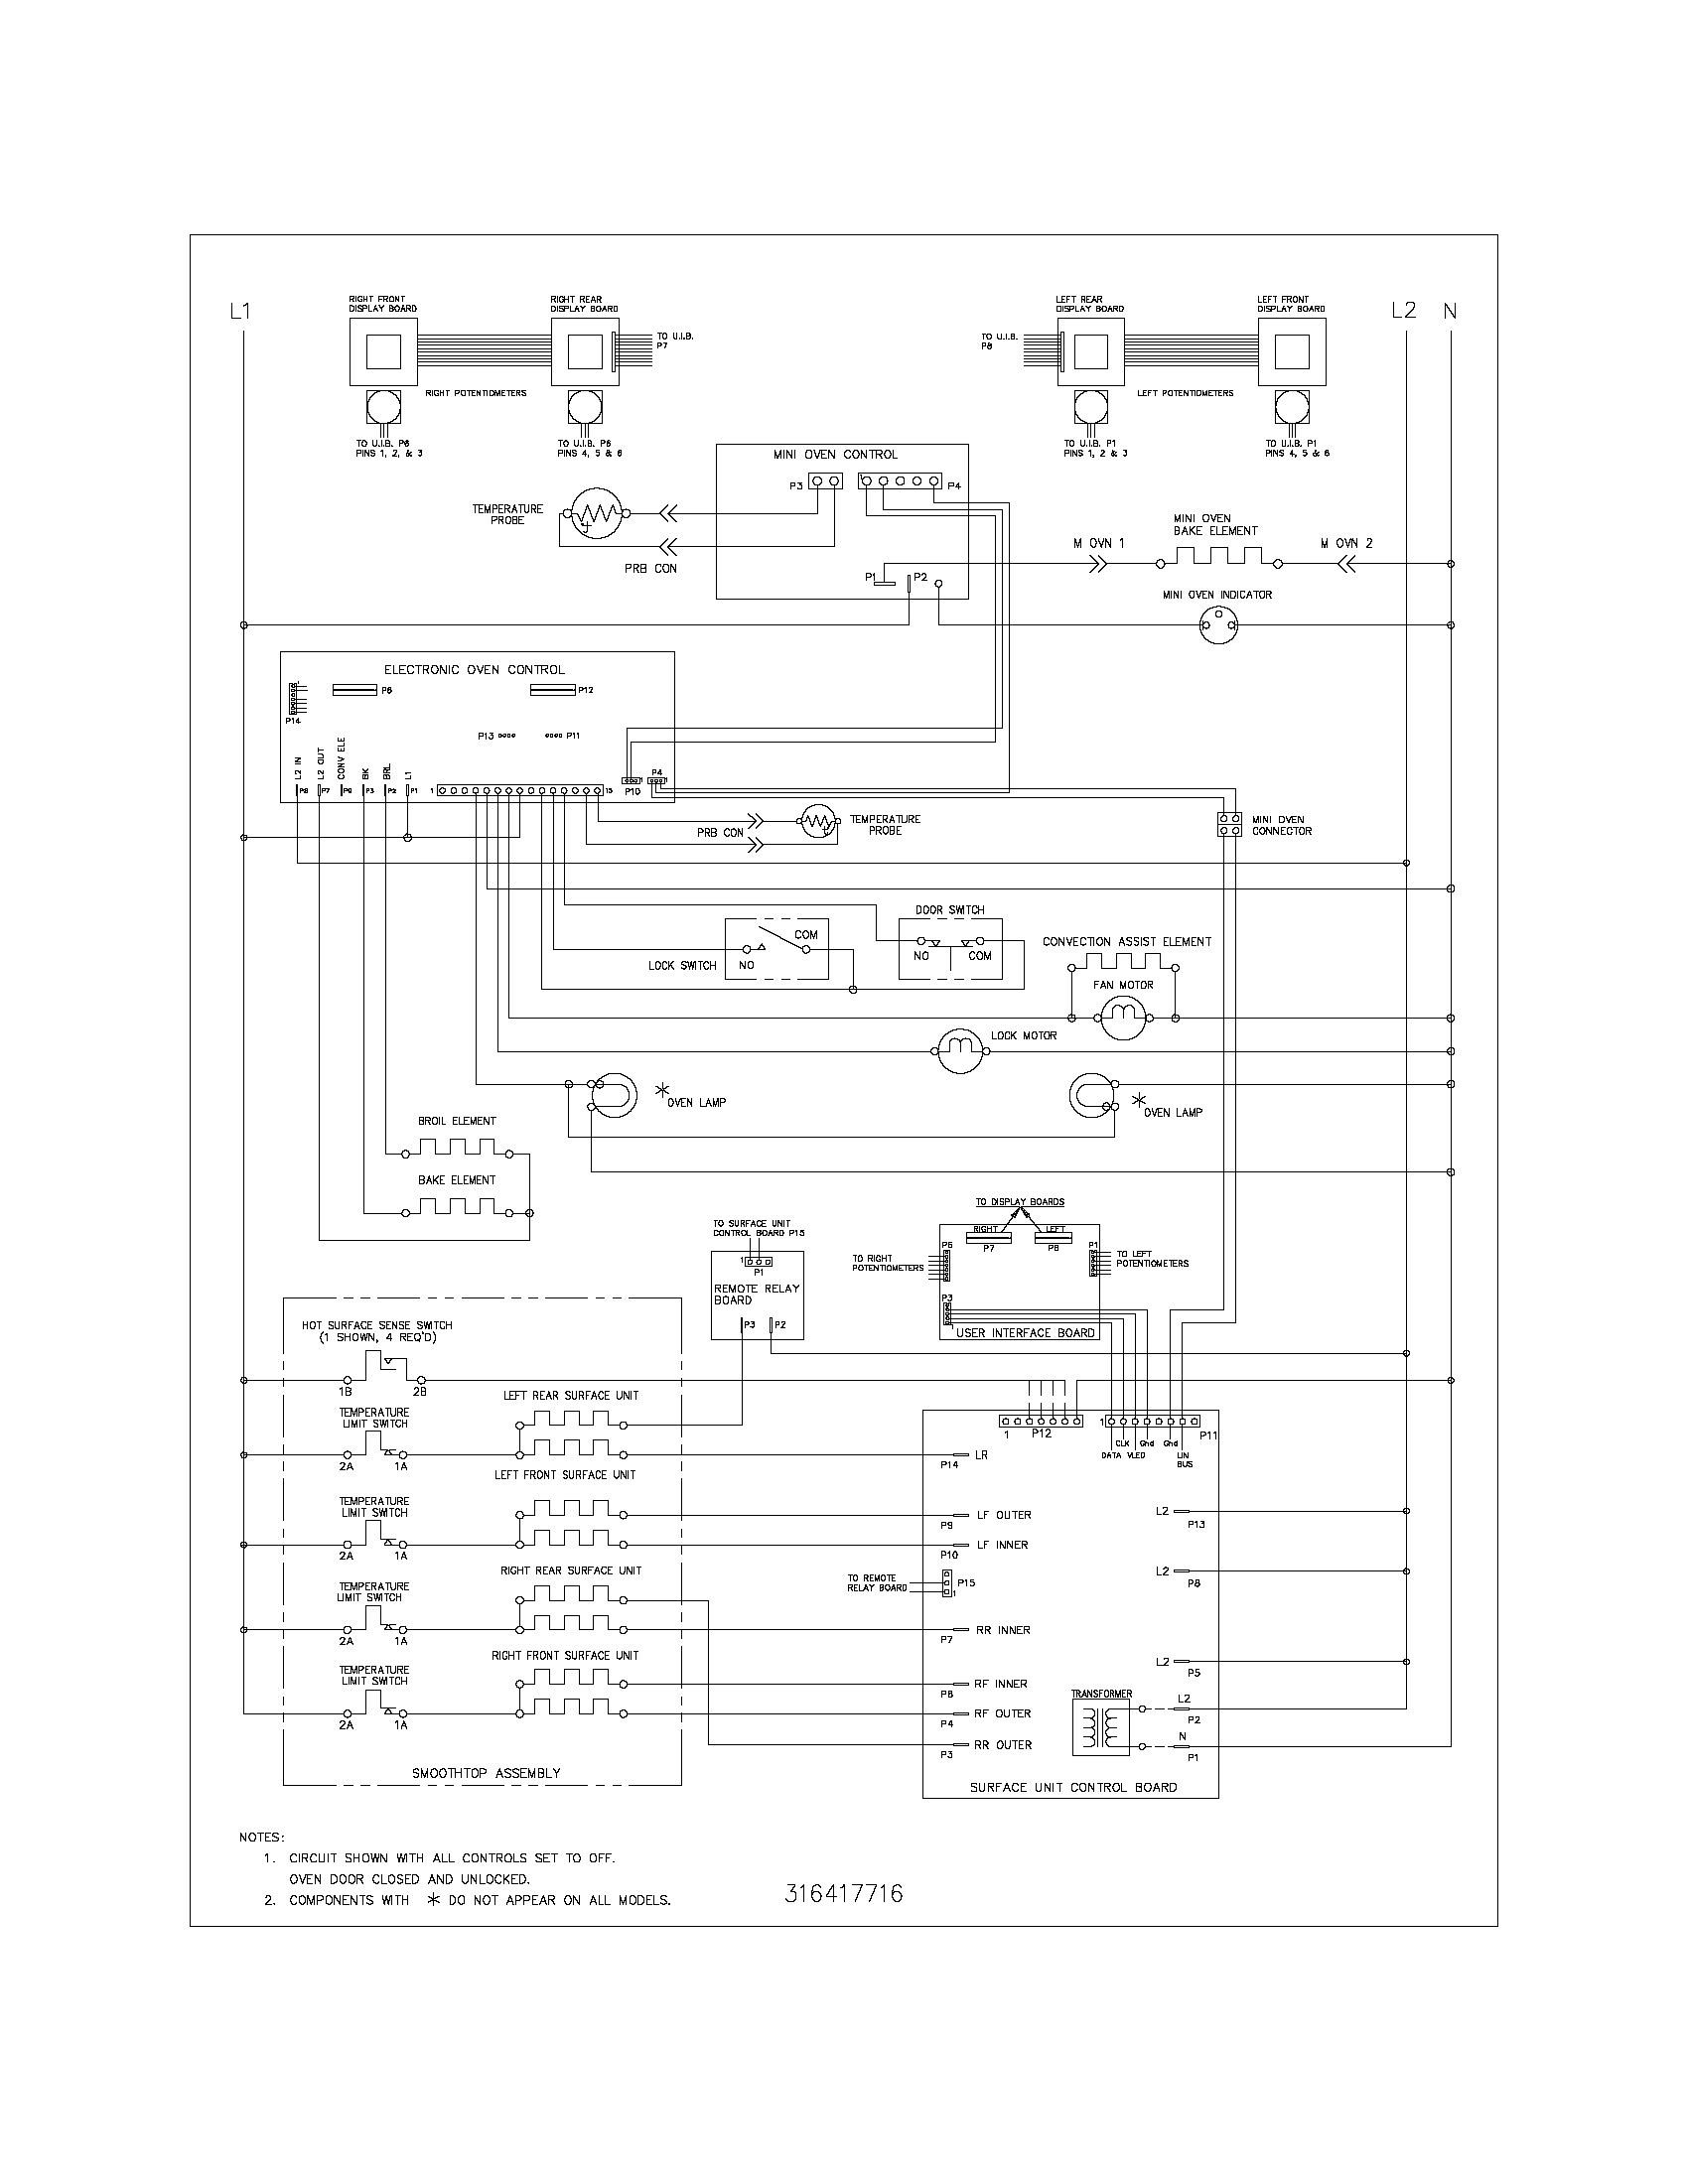 wiring schematic parts odes wiring diagram e z go wiring diagram \u2022 wiring diagrams j oliver 1850 wiring diagram at mifinder.co